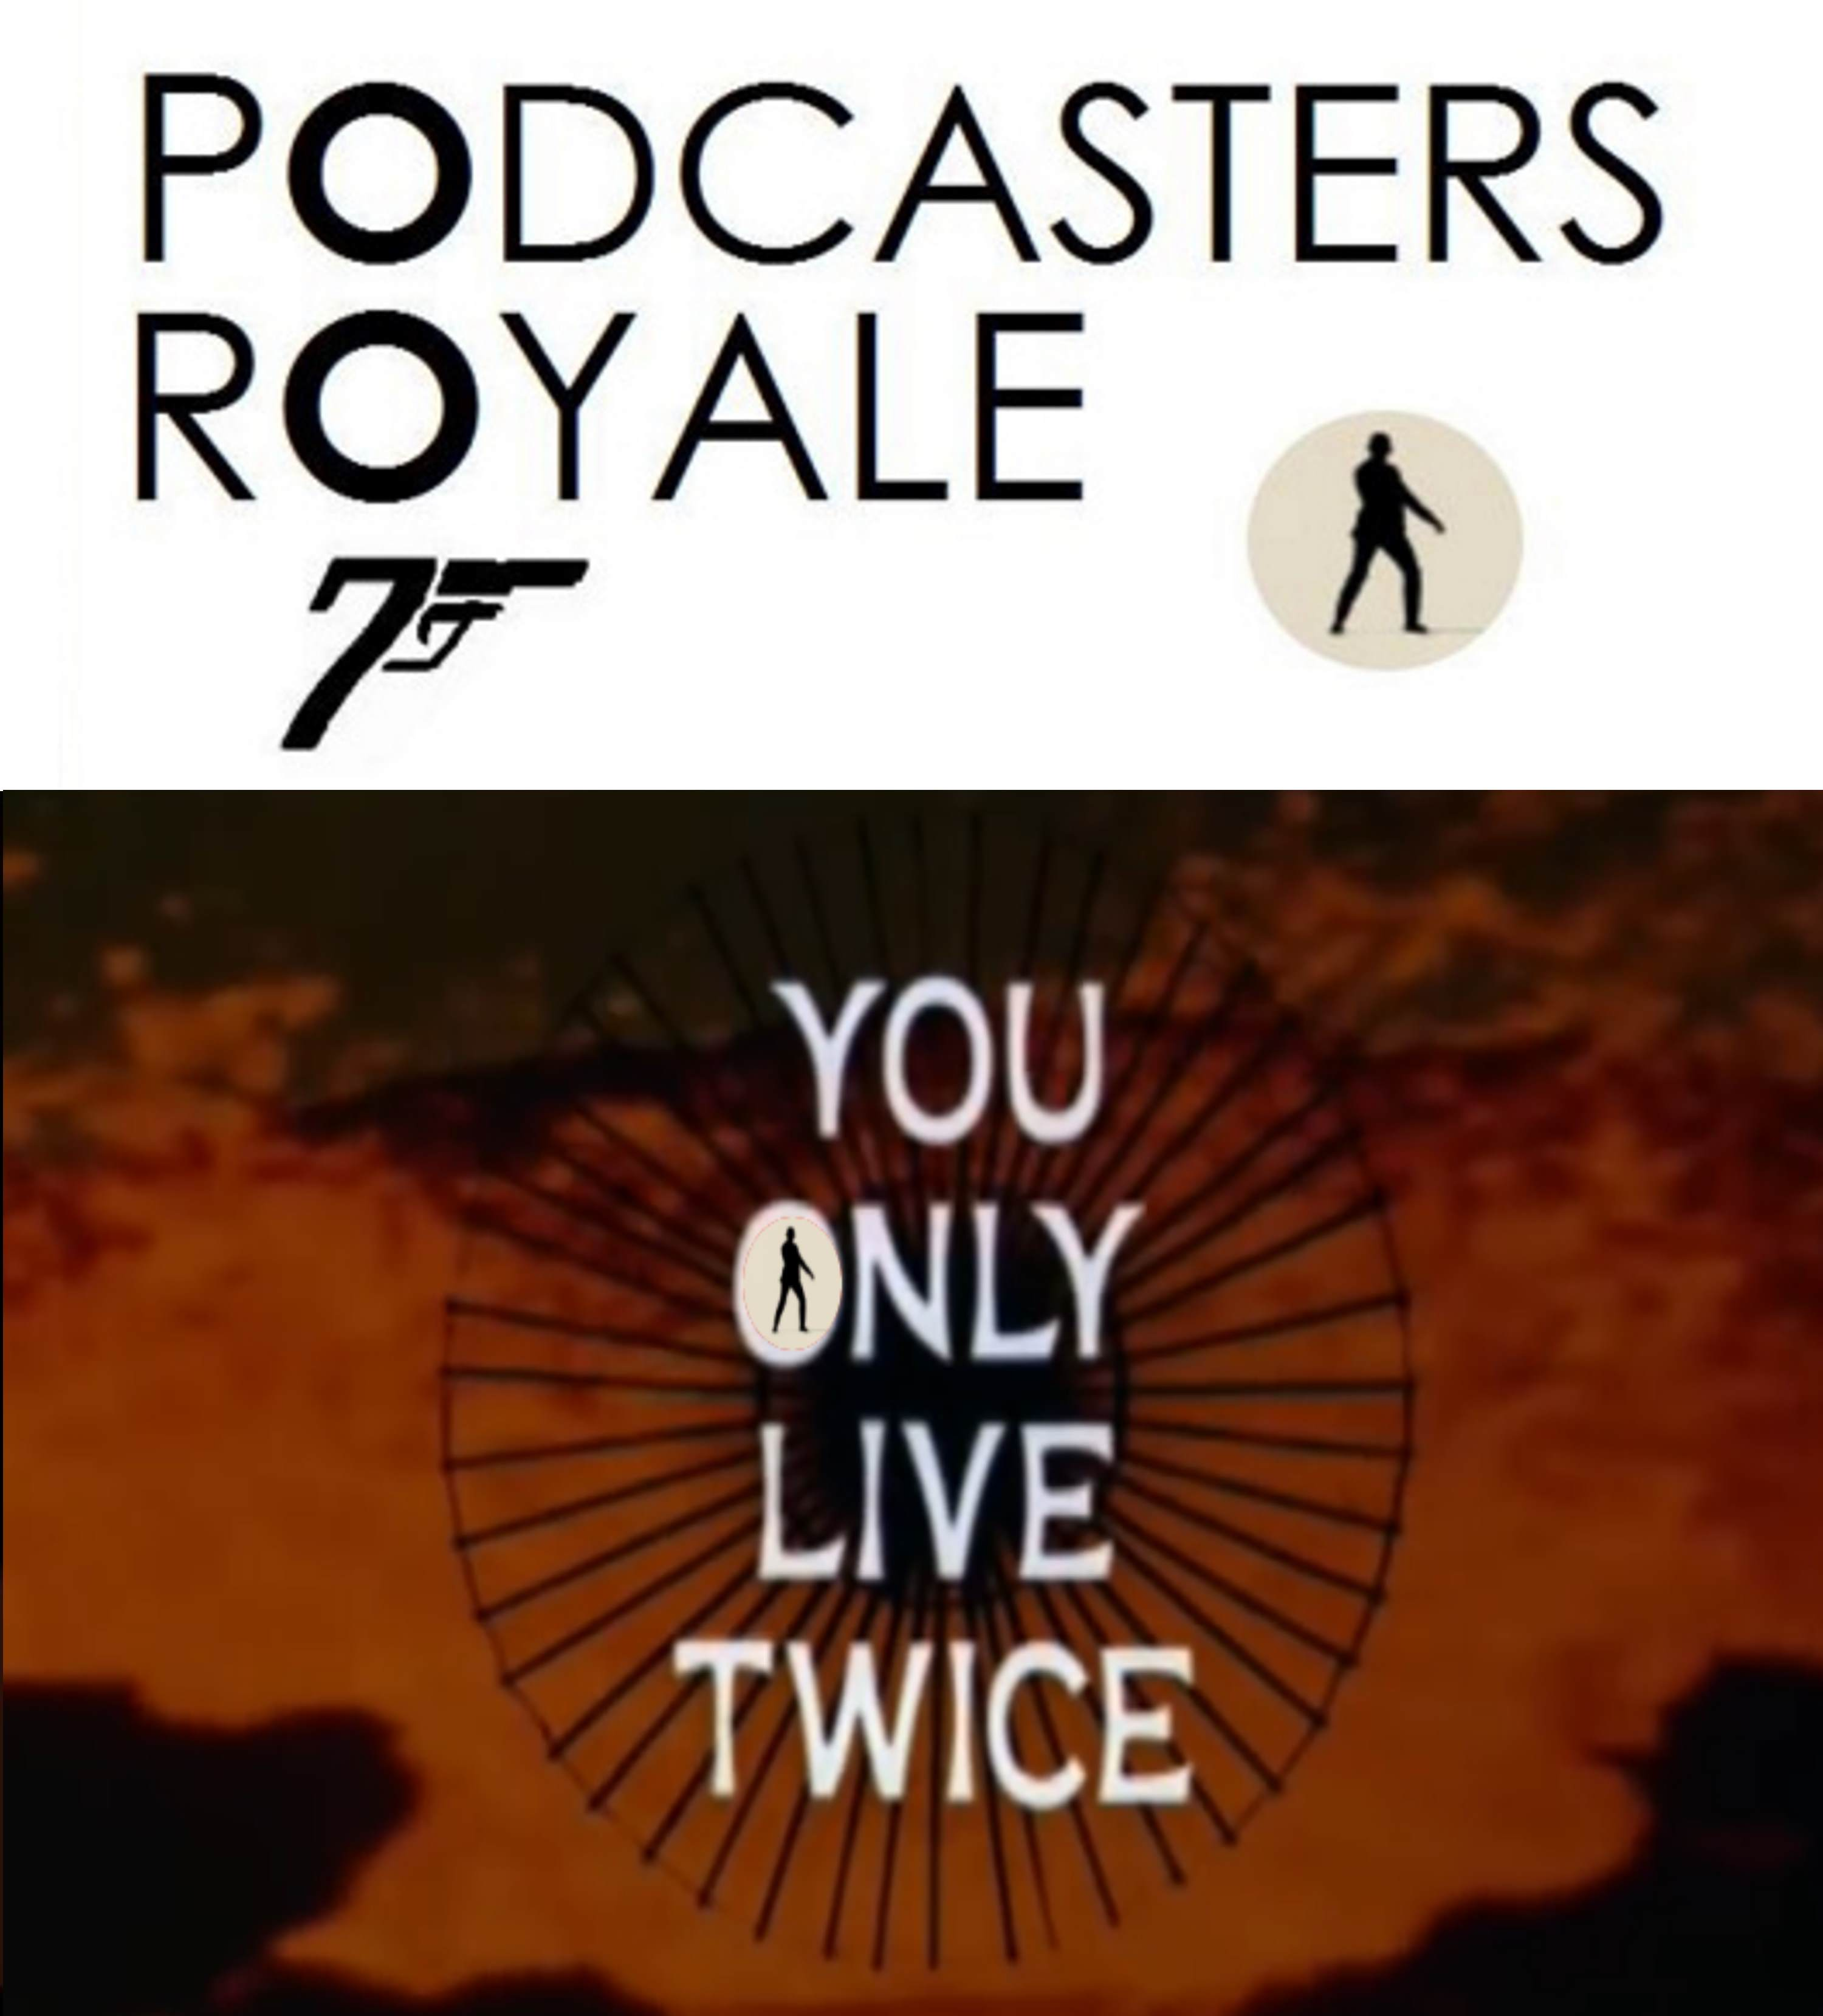 PODCASTERS ROYALE 27 - YOU ONLY LIVE TWICE